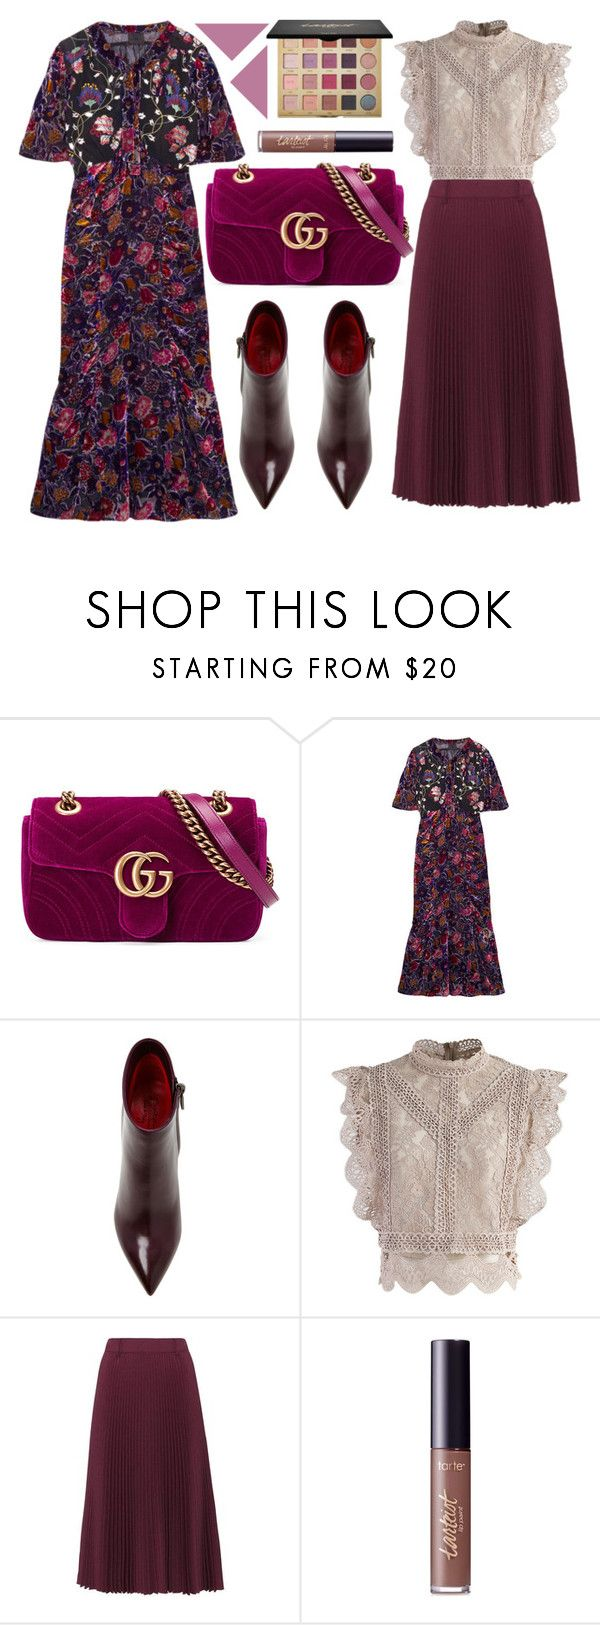 """""""Fuchsia"""" by cherieaustin ❤ liked on Polyvore featuring Gucci, Anna Sui, Santoni, Chicwish, Prada and tarte"""